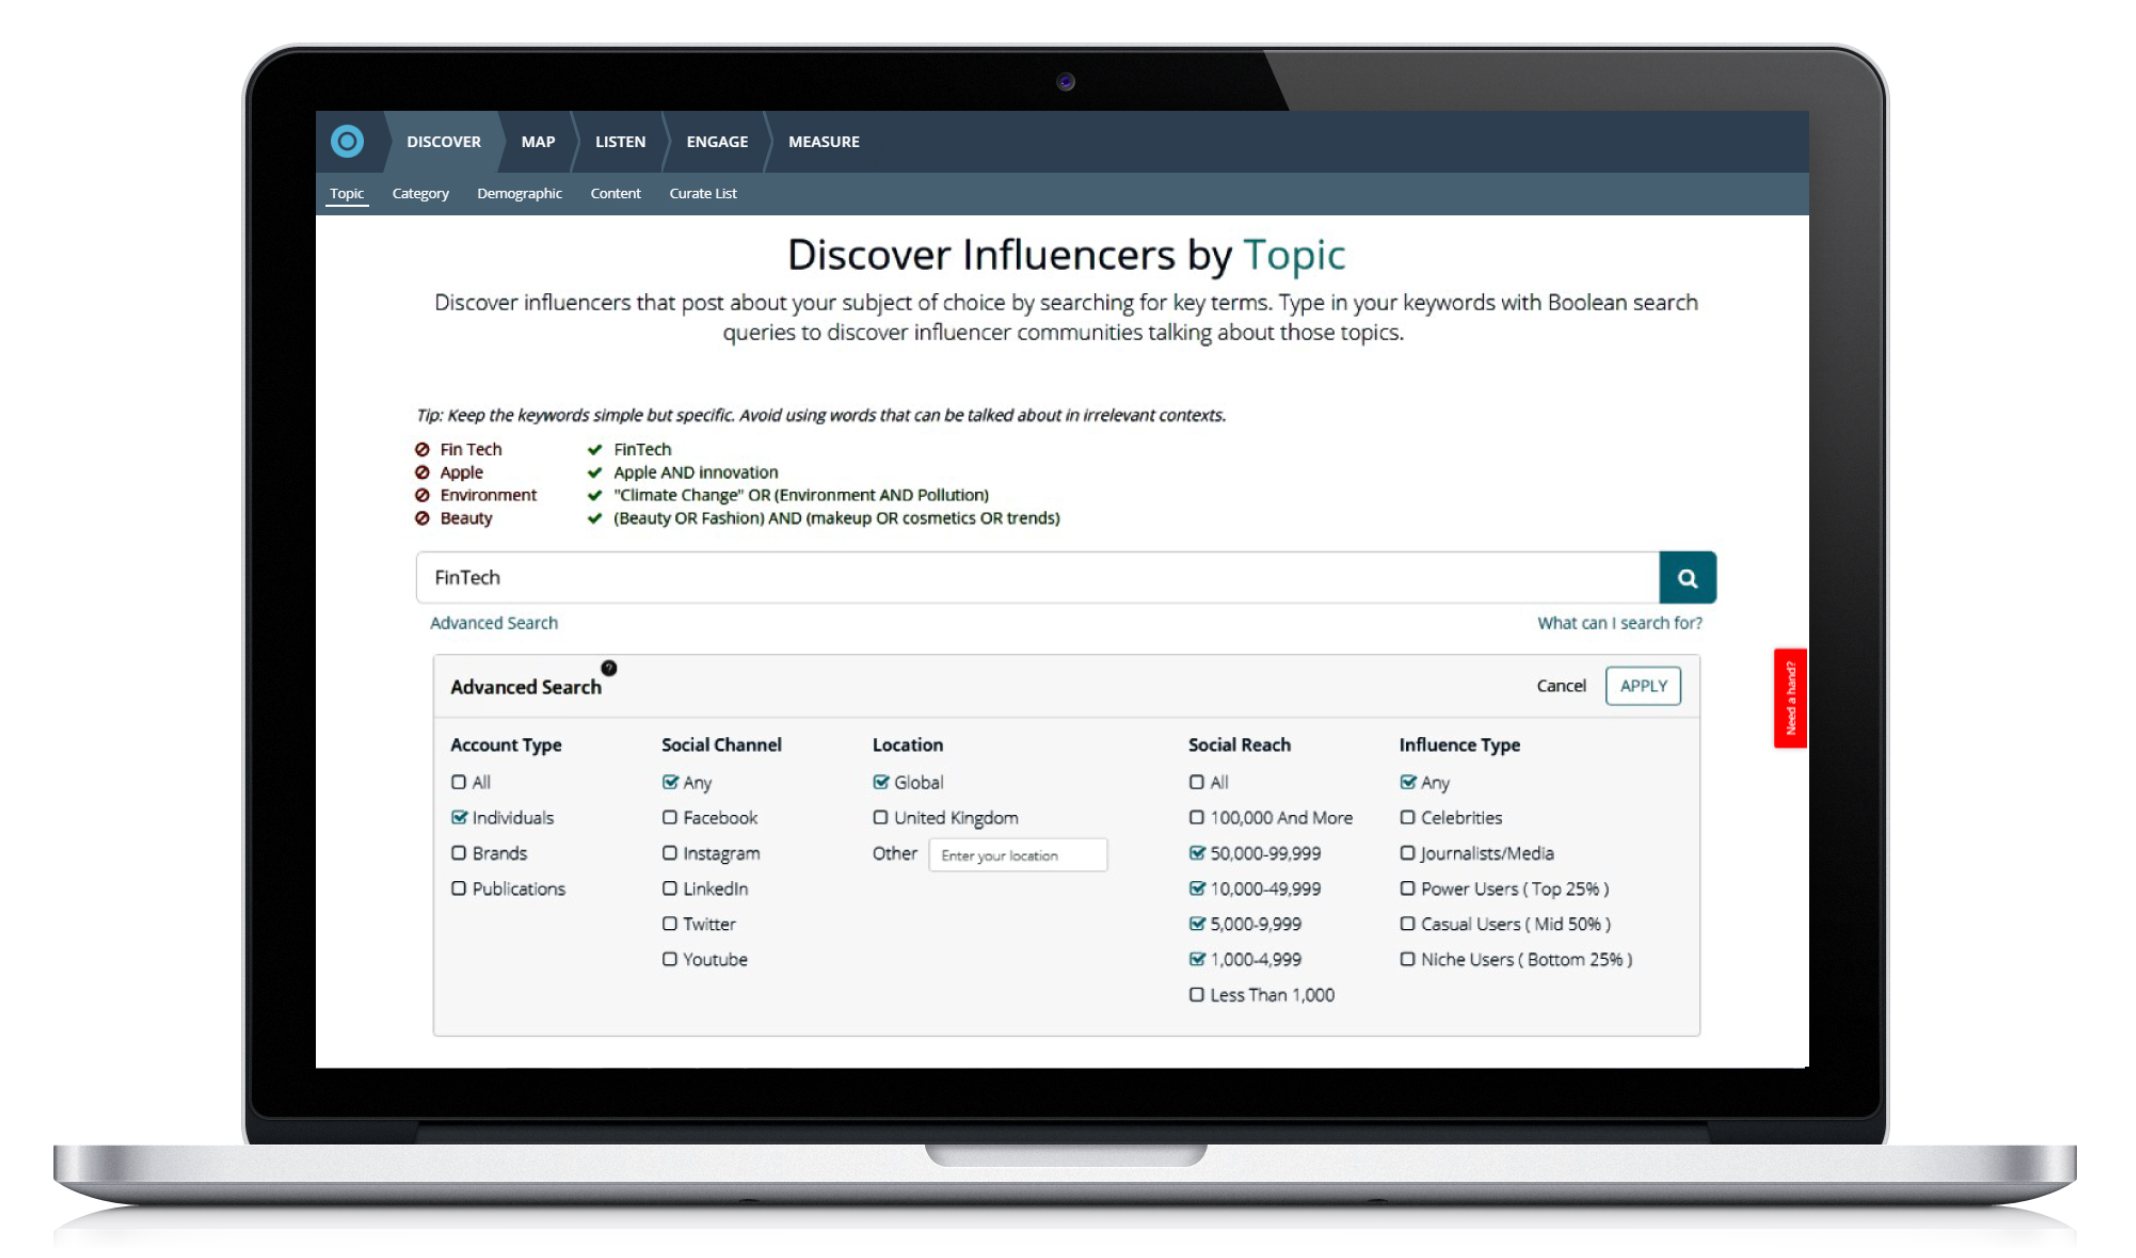 Discover influencers across various industries, topics and countries